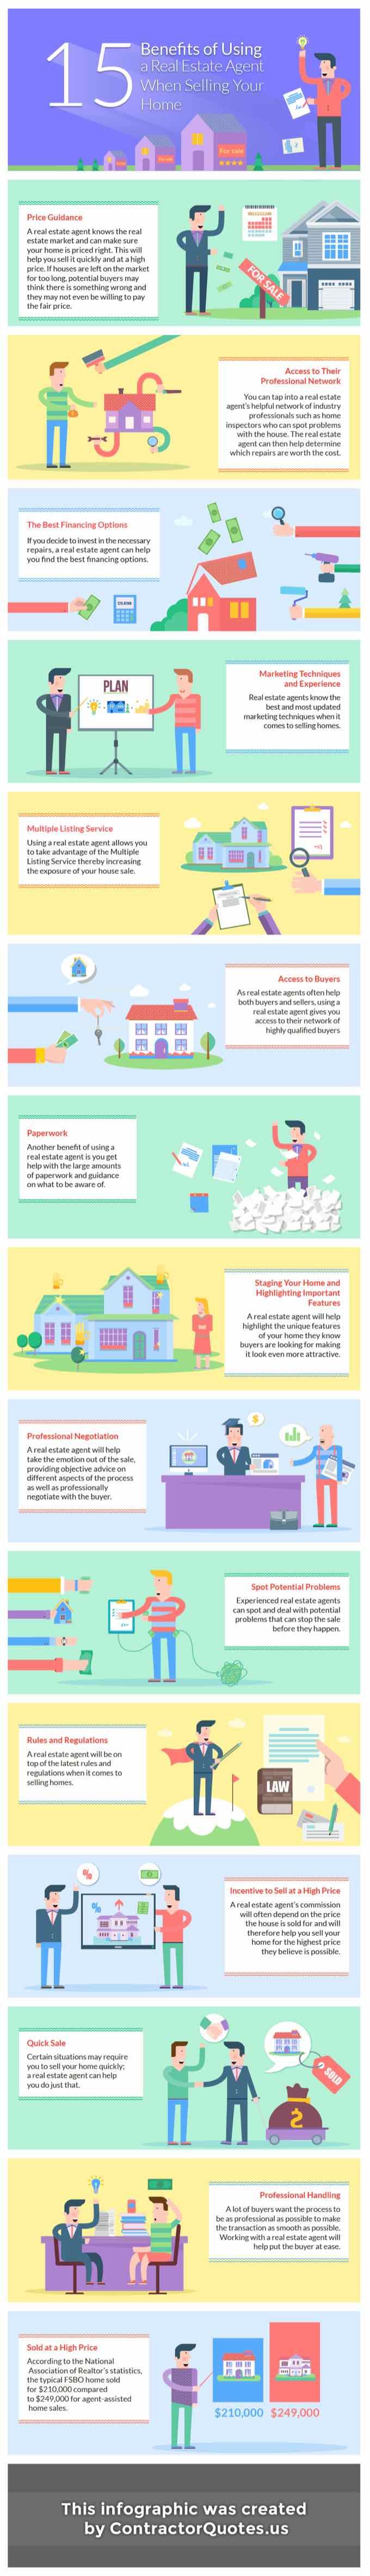 15 Benefits of Hiring A Listing Agent To Sell Your Home  (Infographic) Latest Posts Winnipeg Home Selling News & Tips  Condos Infographic Winnipeg